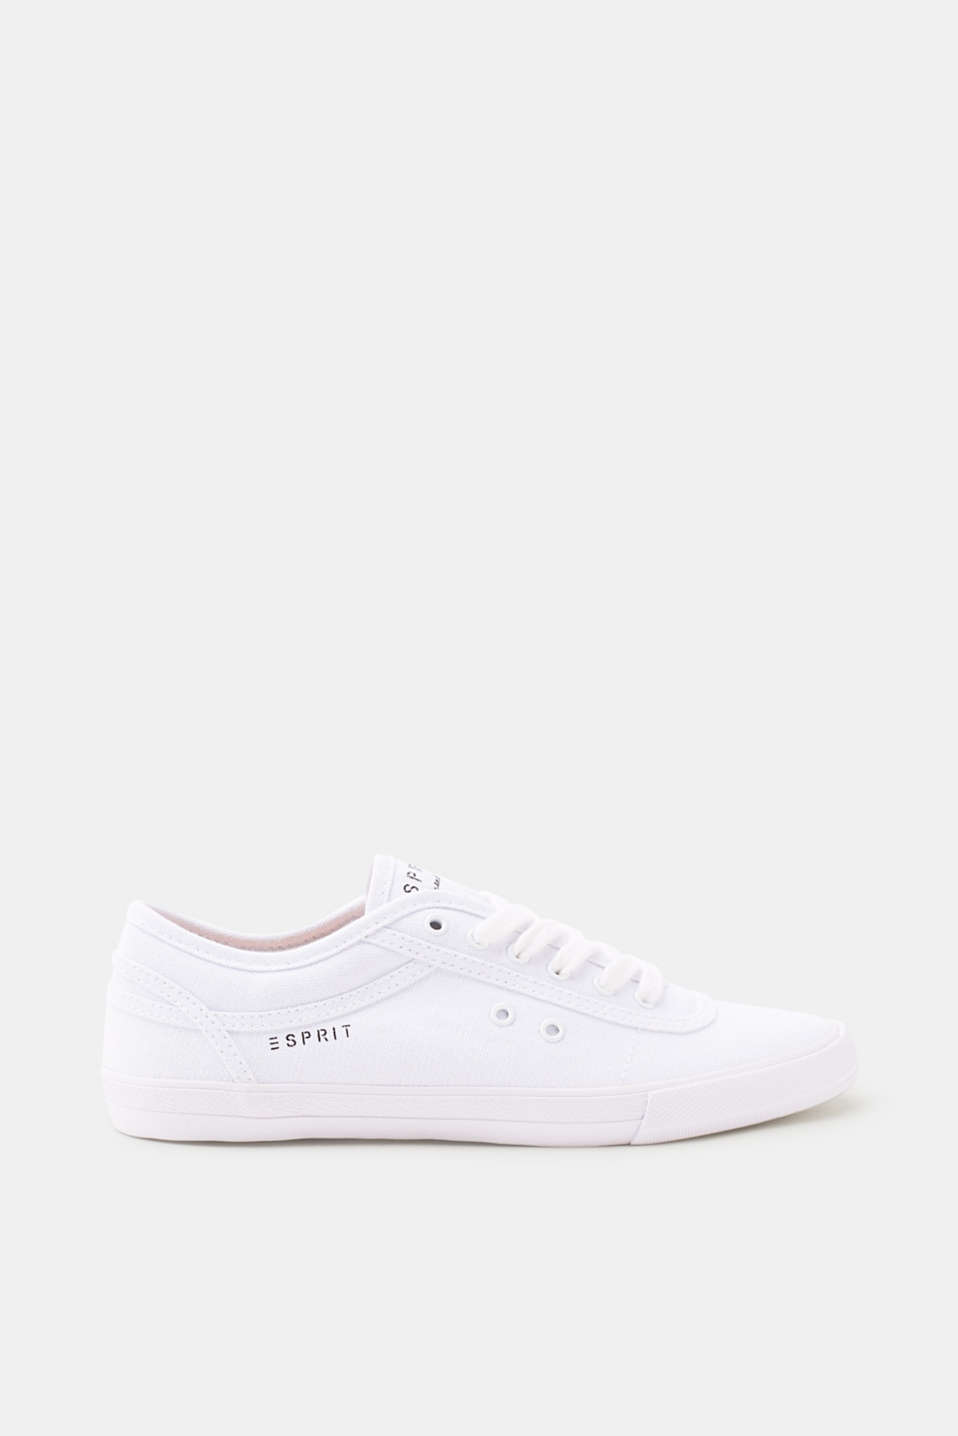 Casual and timeless! The grainy canvas fabric makes these comfy lace-up trainers something special.